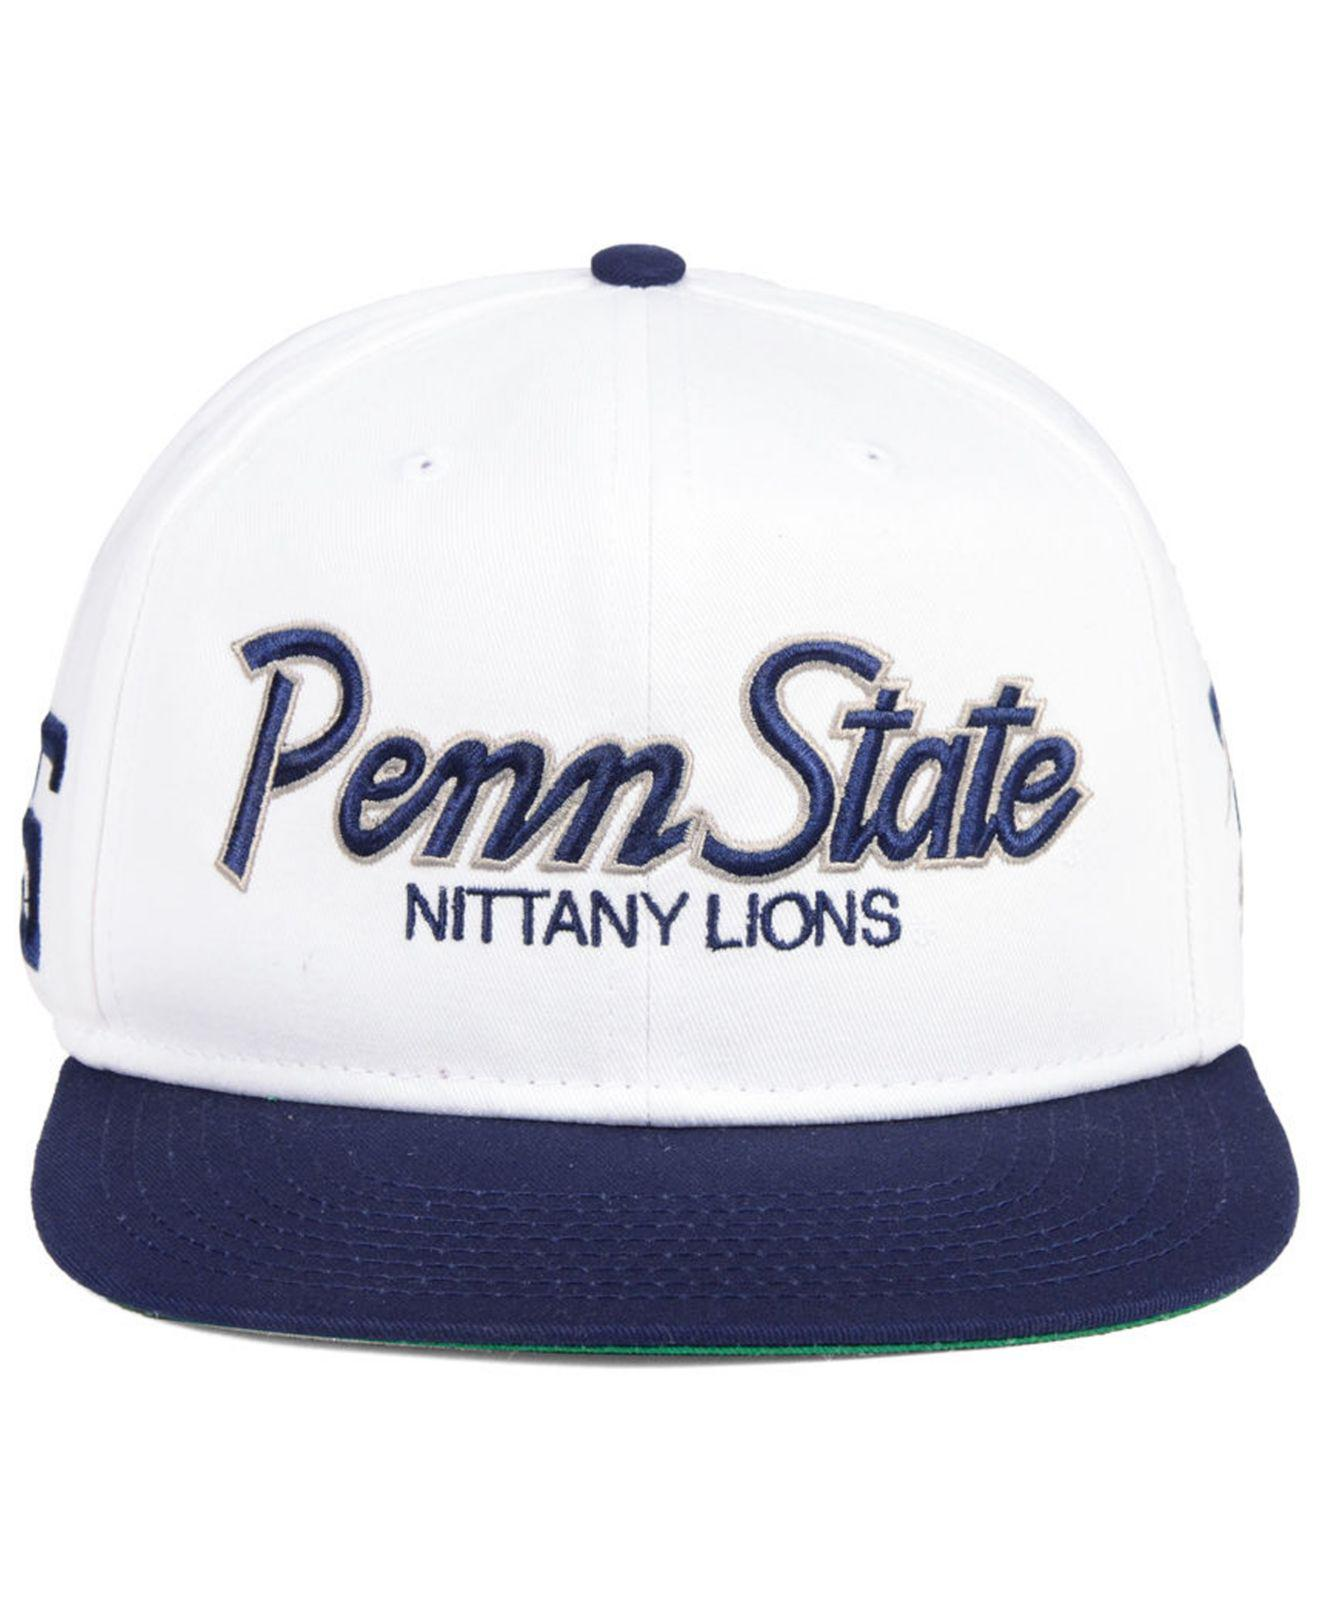 819638fbfe3 Lyst - Nike Penn State Nittany Lions Sport Specialties Snapback Cap in  White for Men